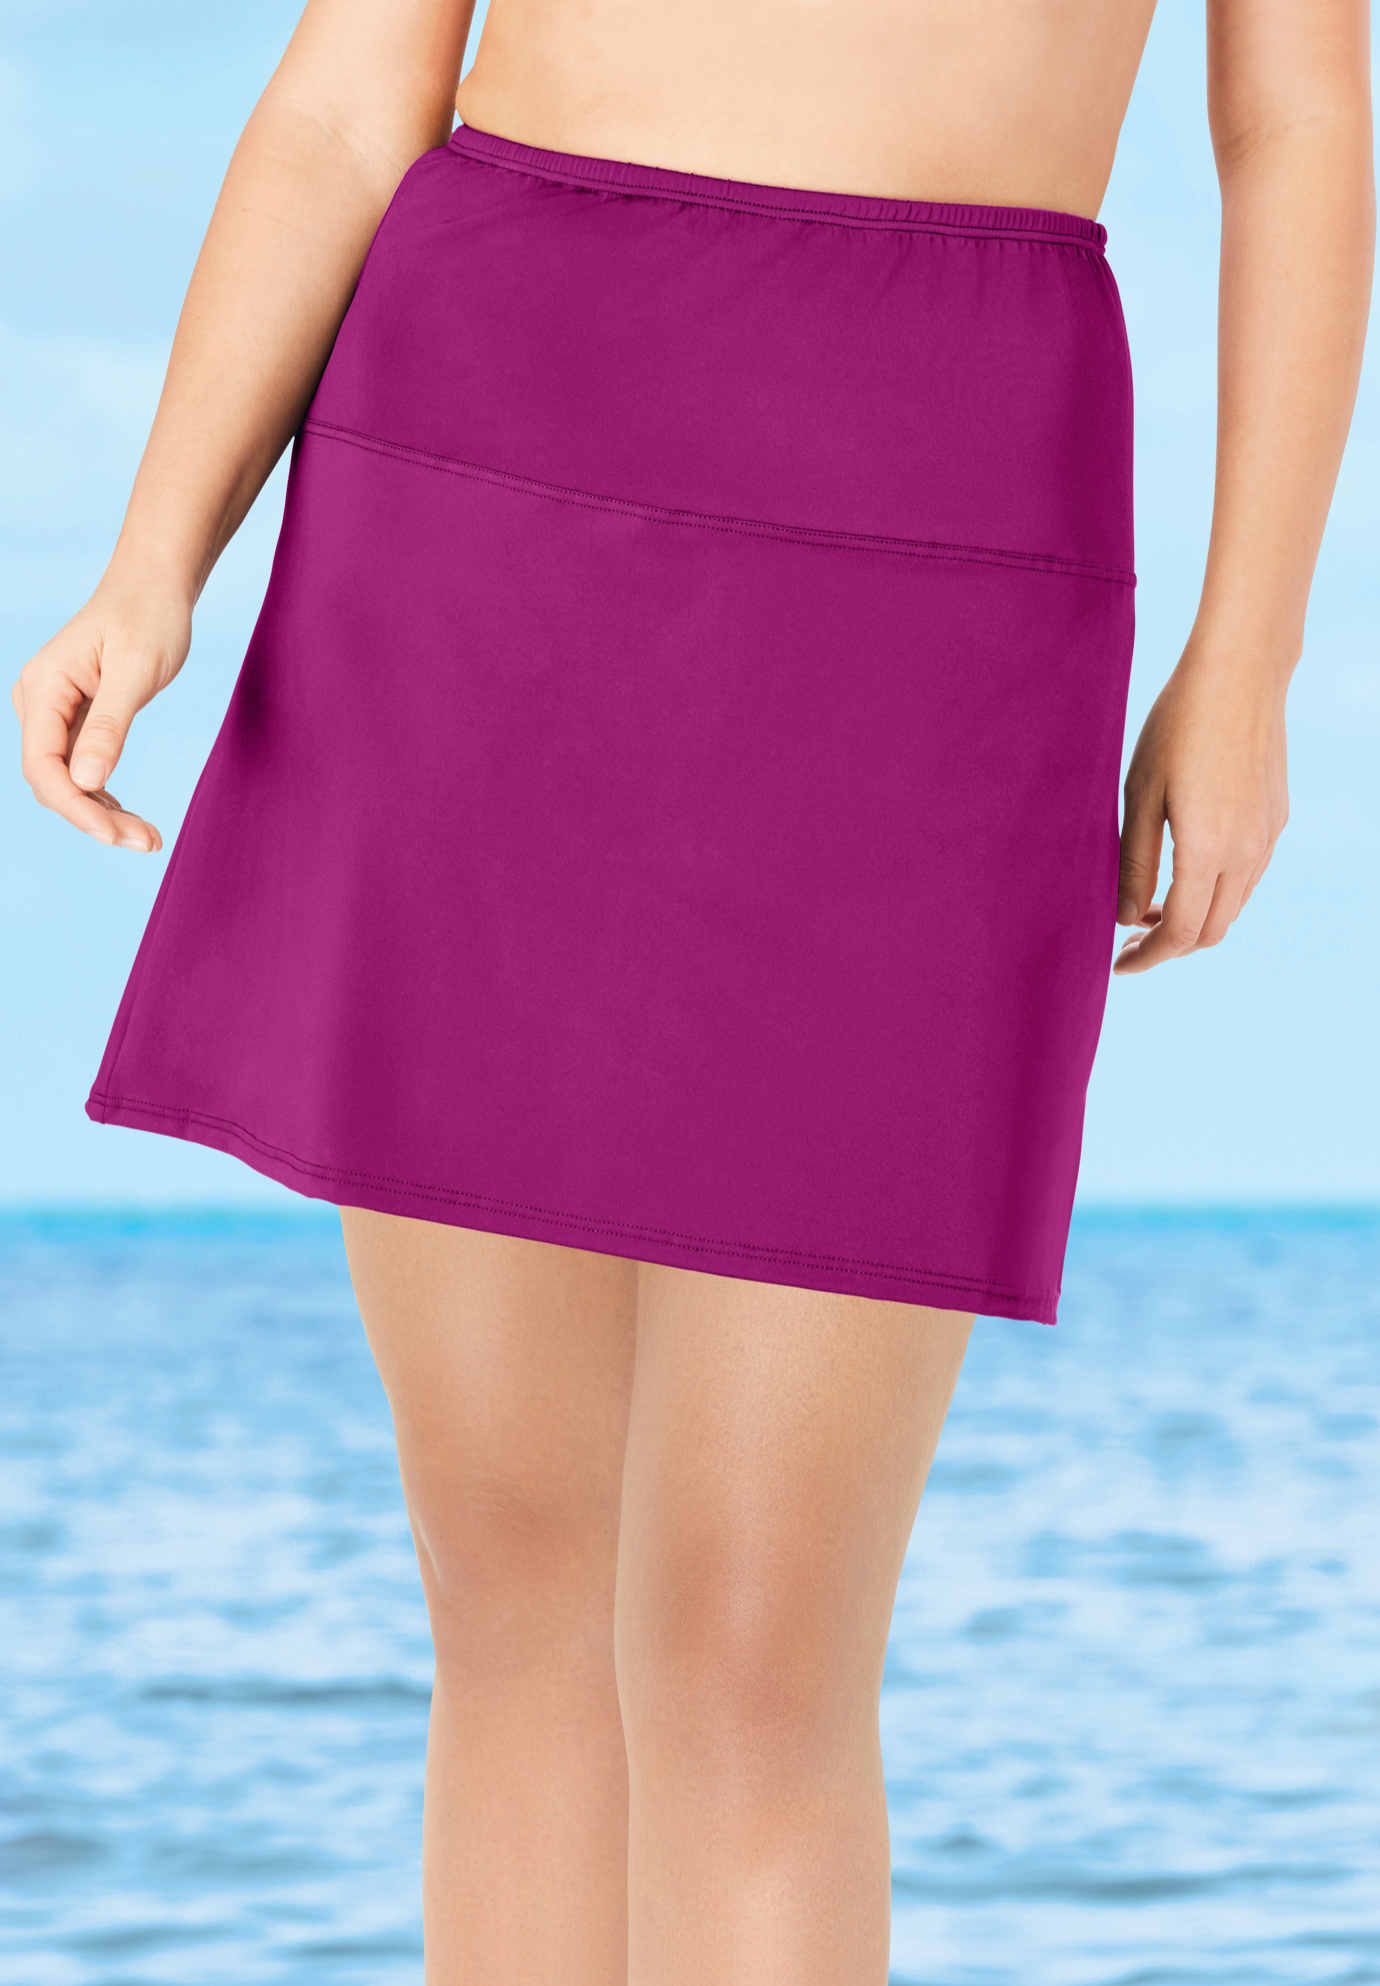 High-Waisted Swim Skirt with Built-In Brief by Swim 365,